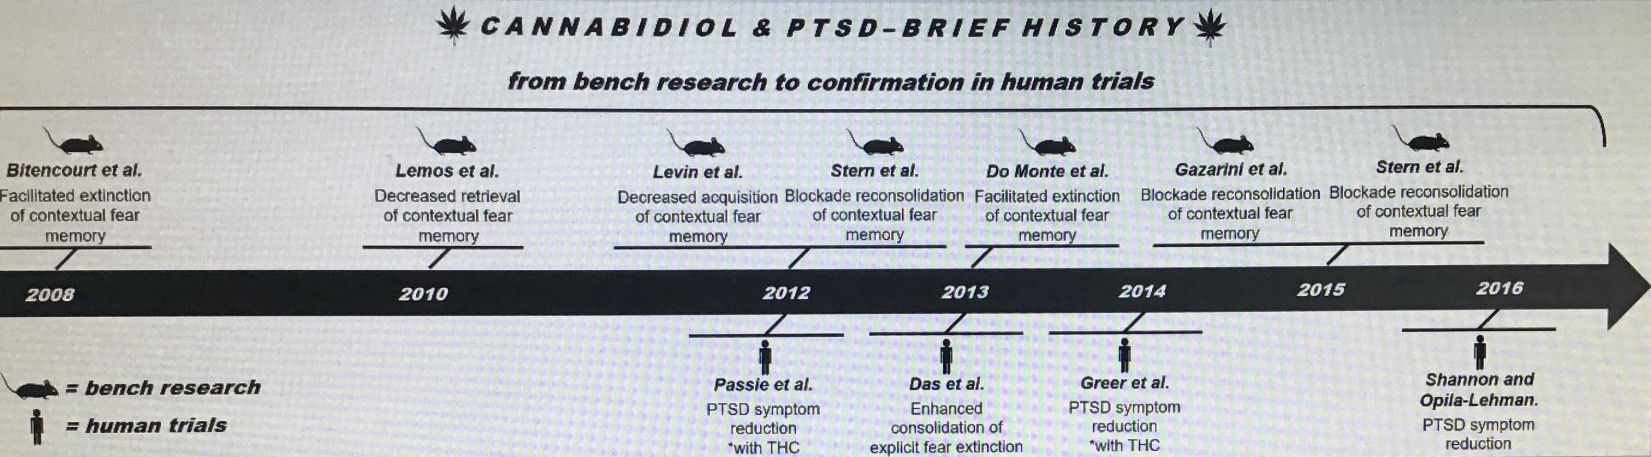 image of the history of cannabidiol and PTSD brief history